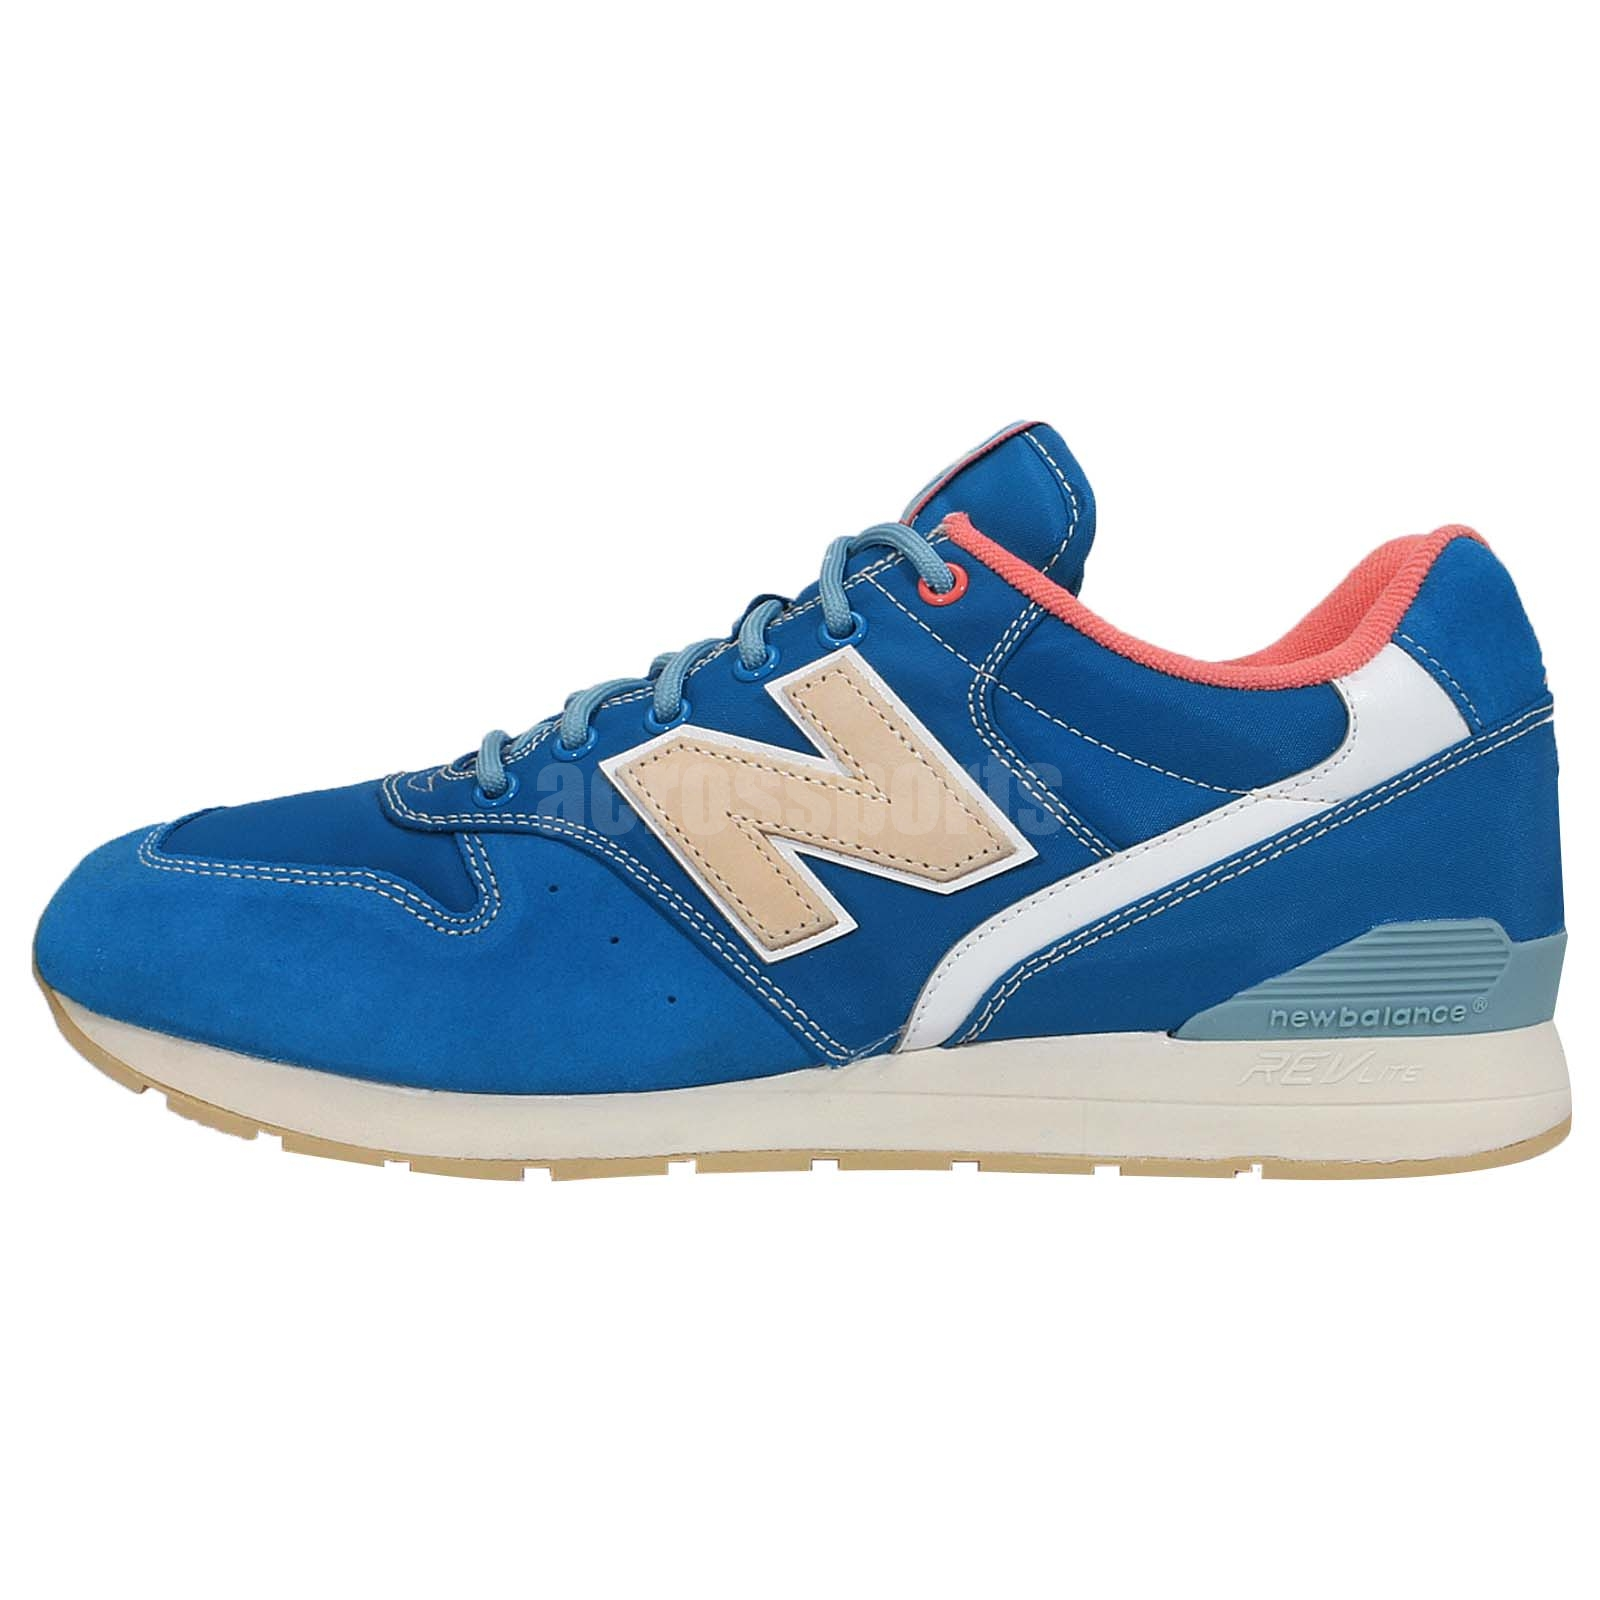 new balance revlite running